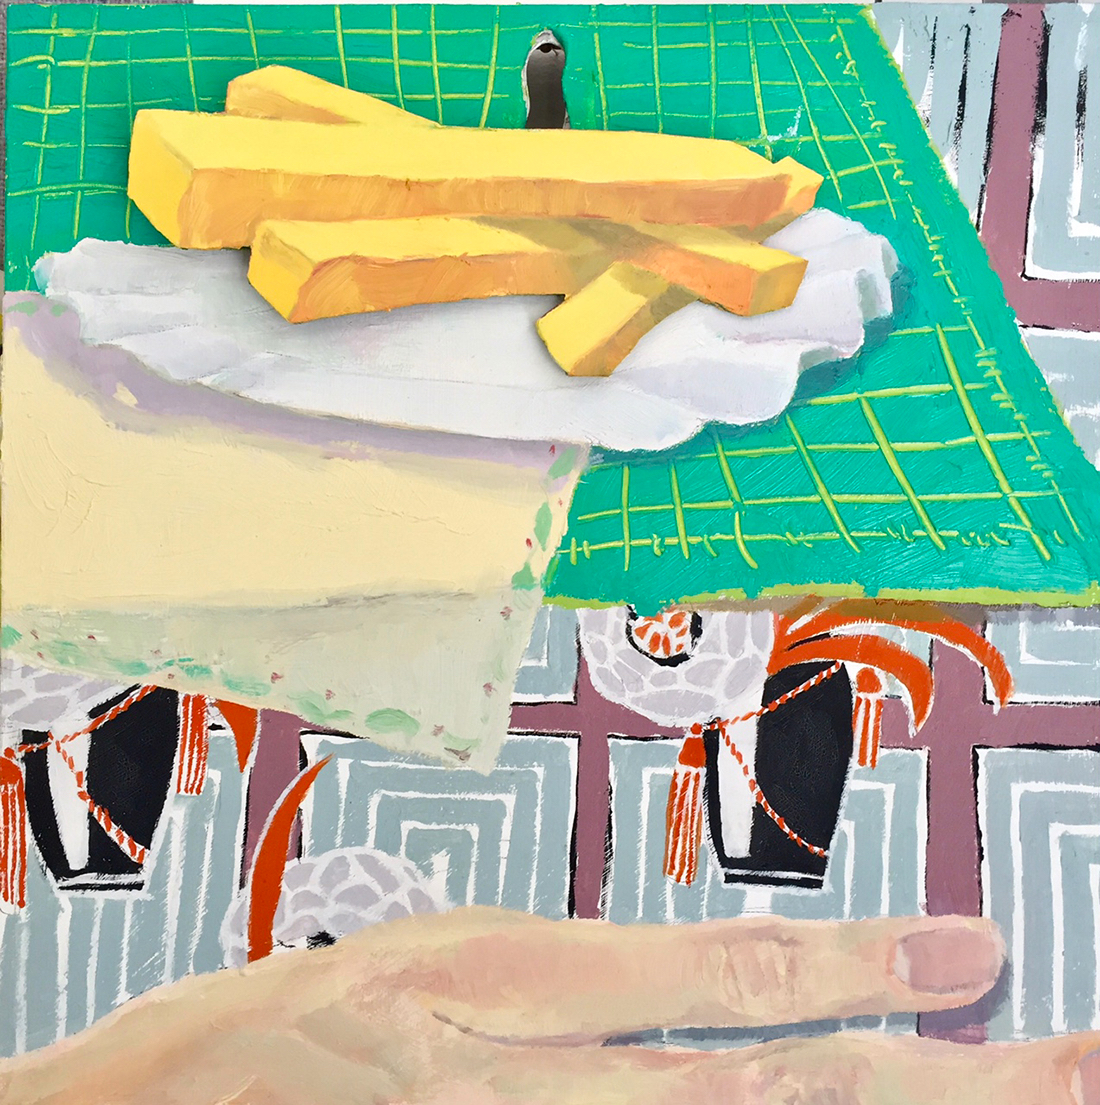 ASM_Andrew Brown_Fries that Wiggle_12x12_Oil and acrylic on panel, kinetic painting_250.jpg